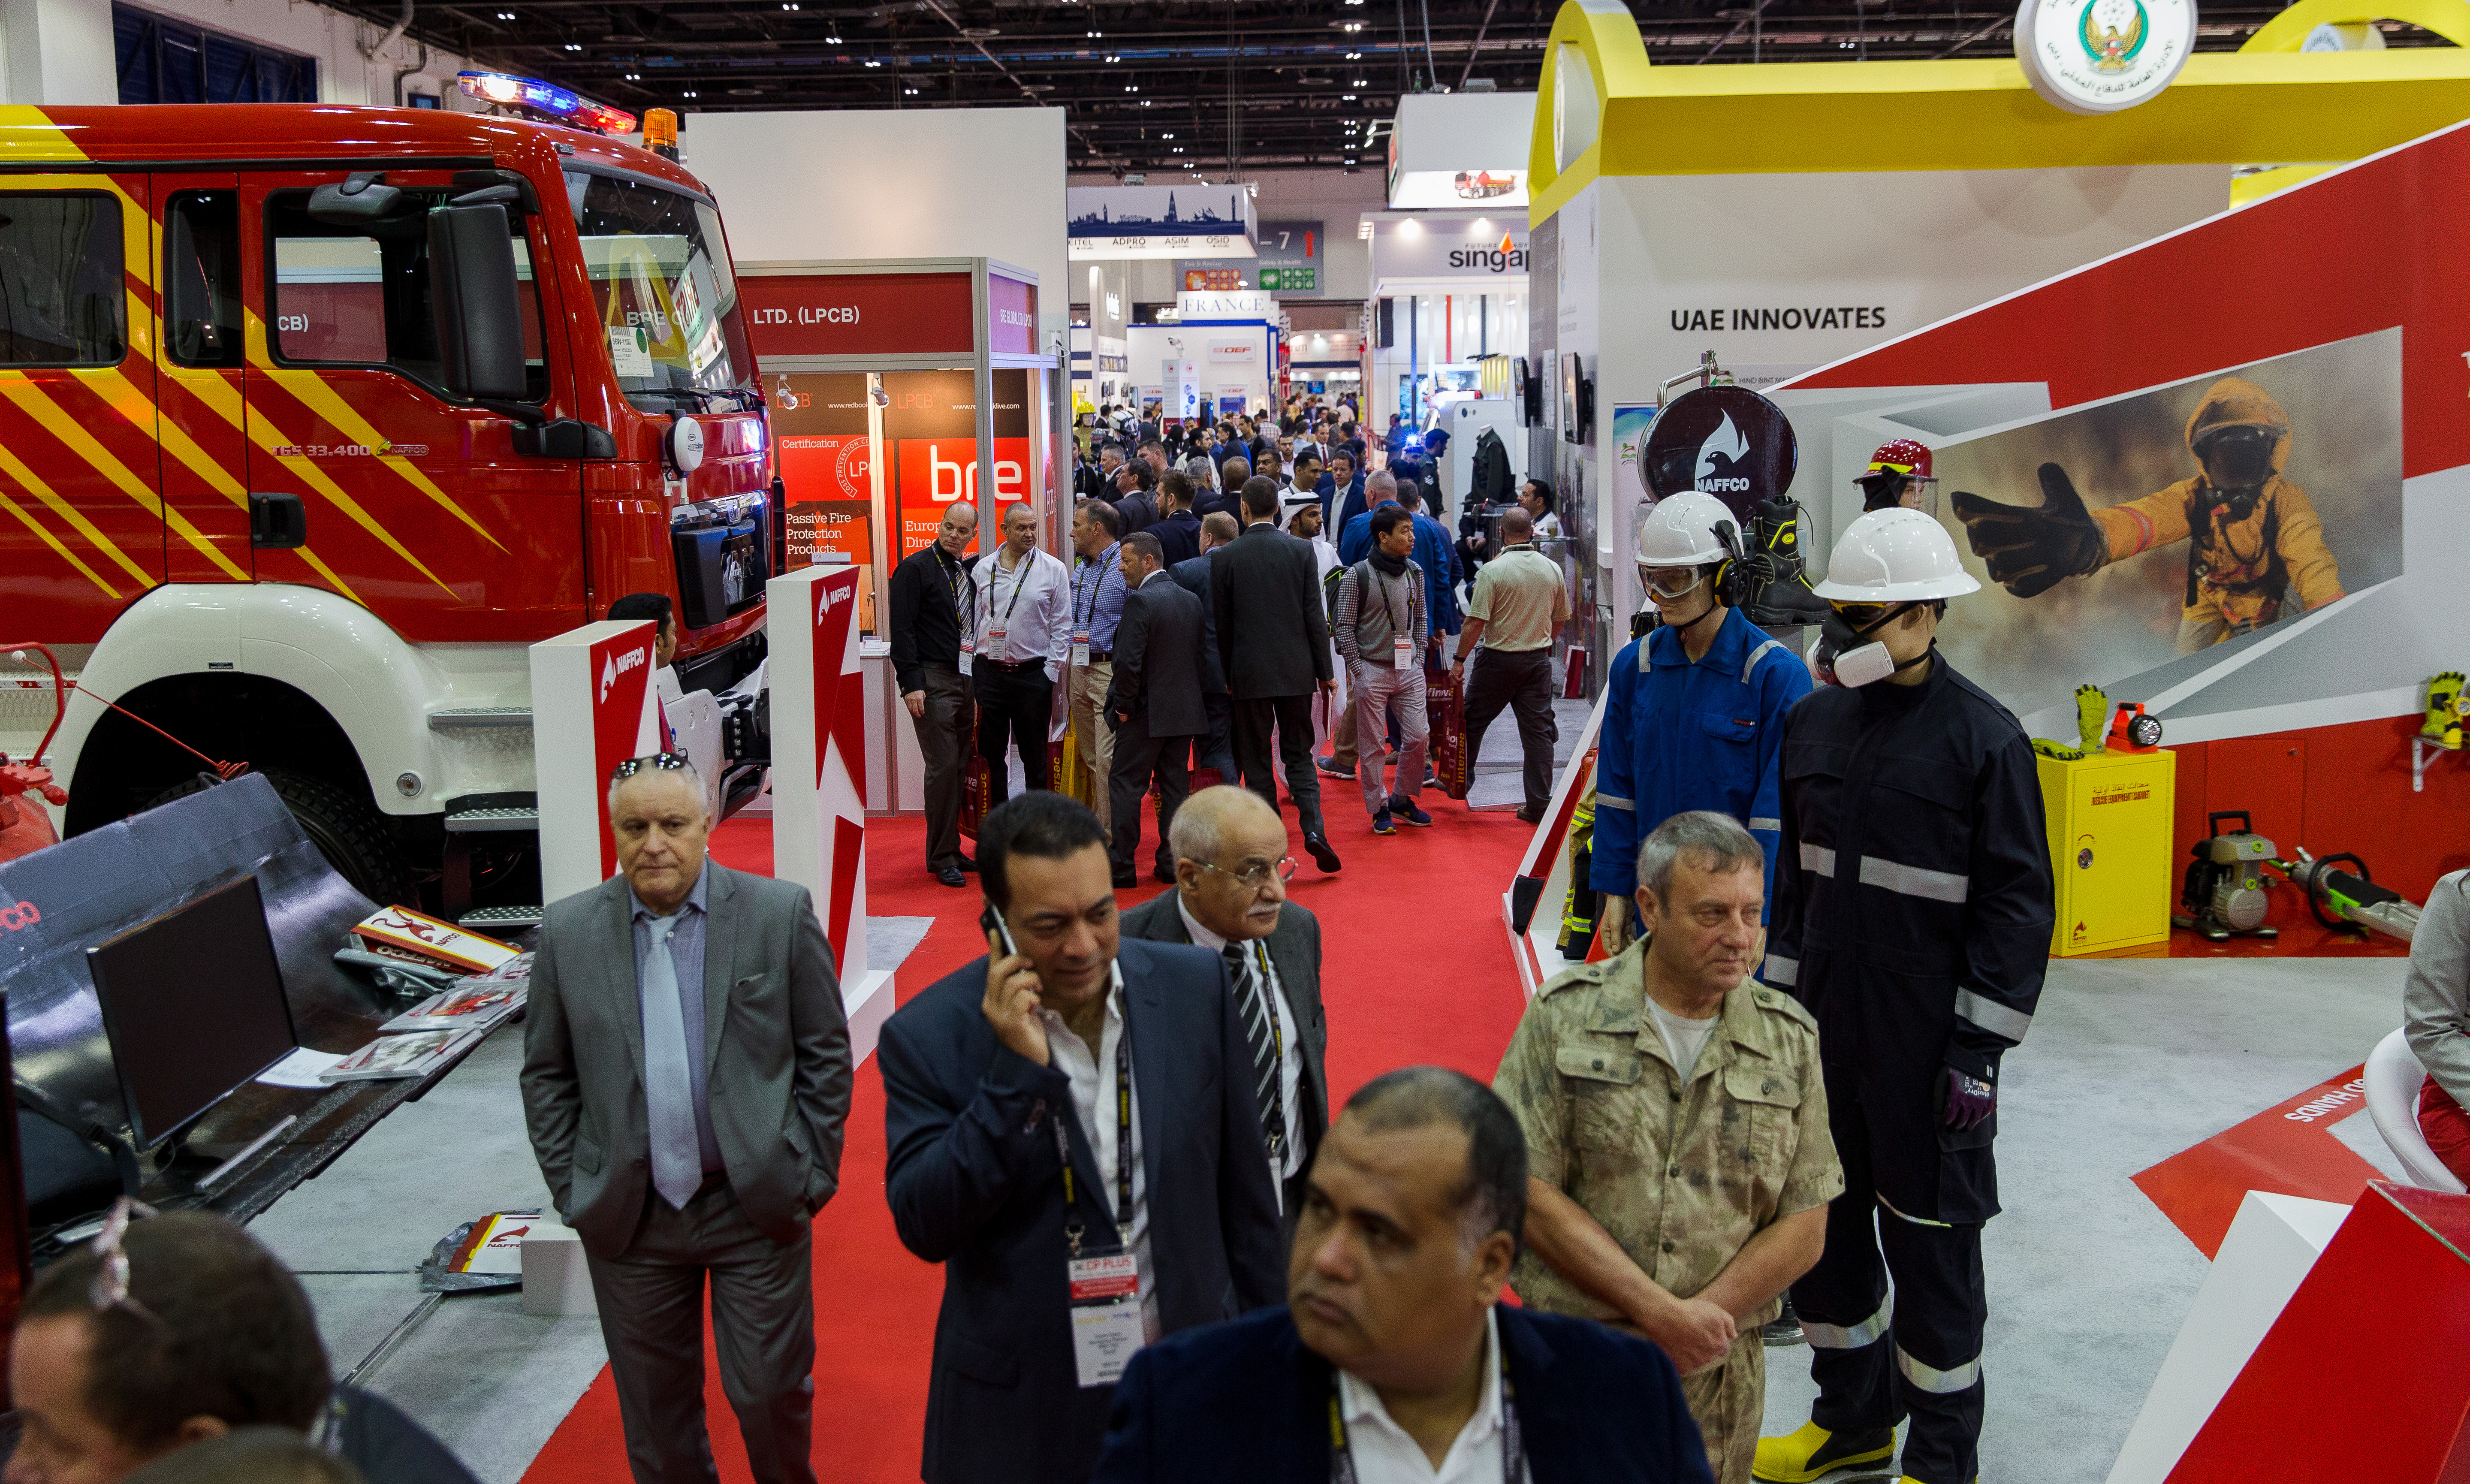 Intersec 2017 – Delegates for fire equipment upgrades regulation fuel demans are told at Intersec Saudi Arabia roadshow